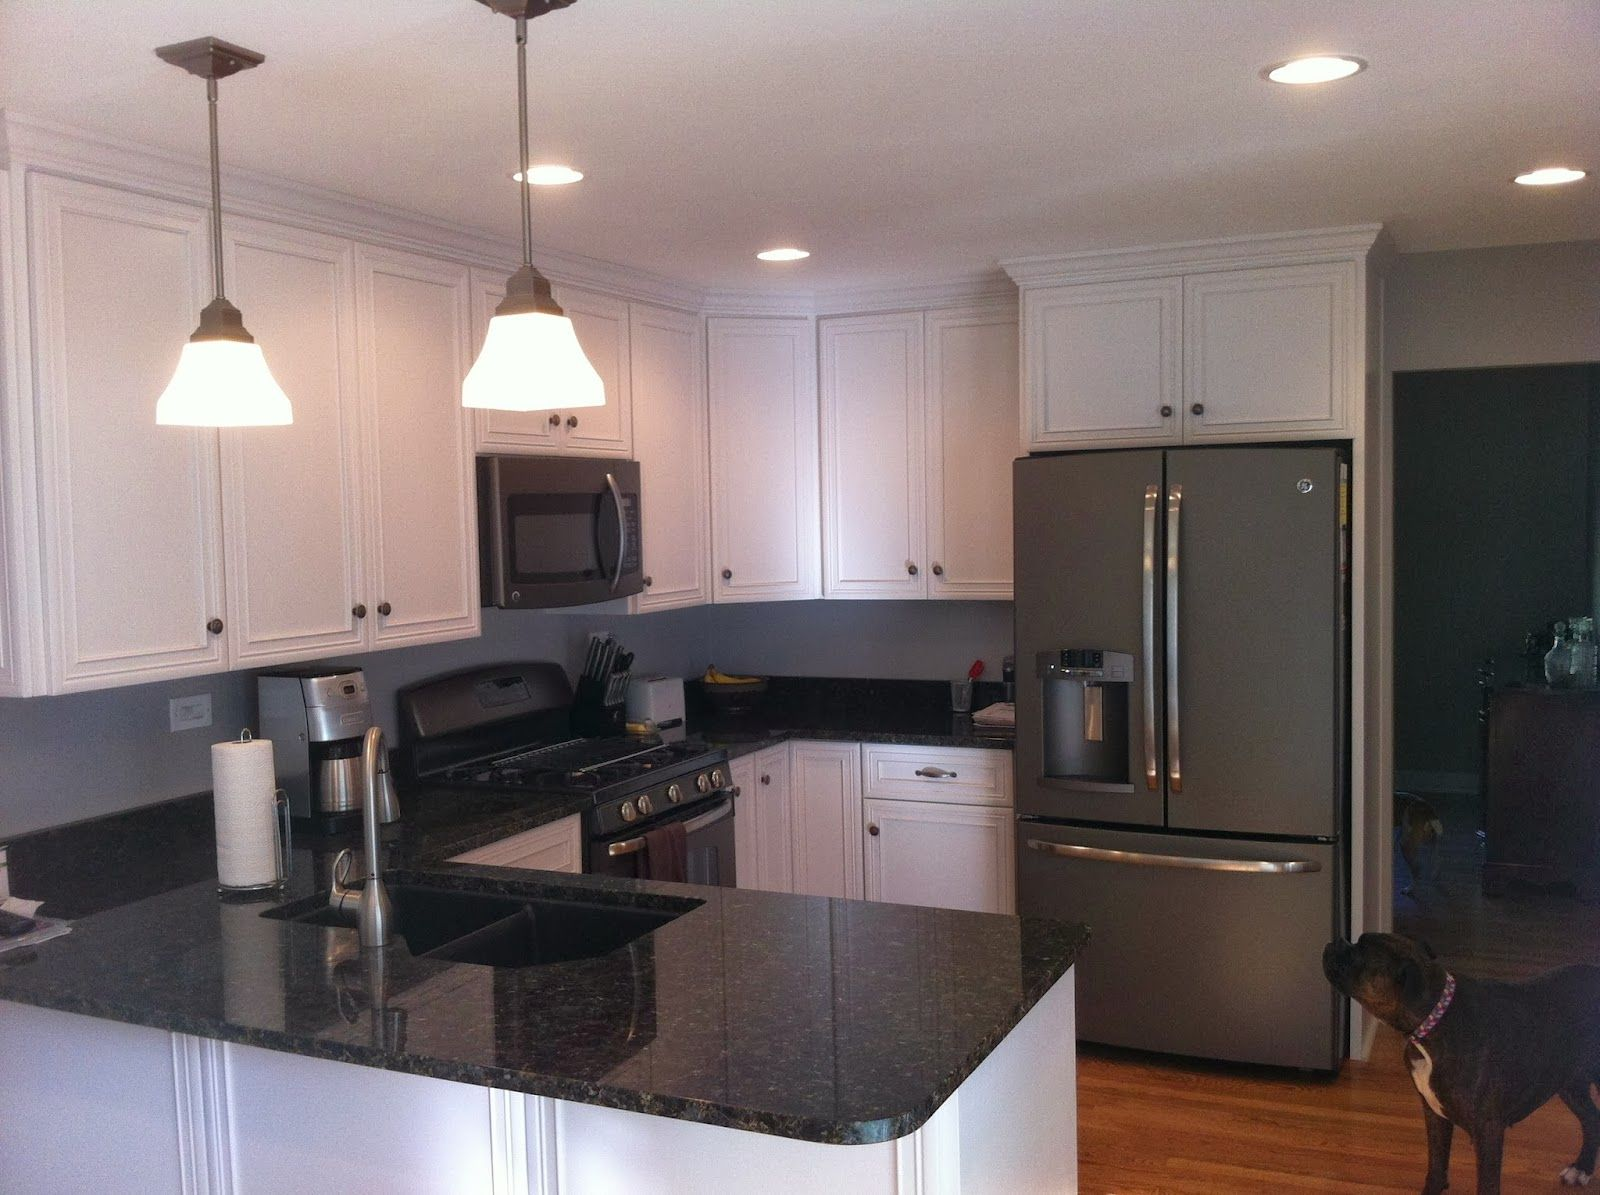 Slate Gray Appliances In Kitchen AFTER Granite Counter Tops - Slate gray cabinets